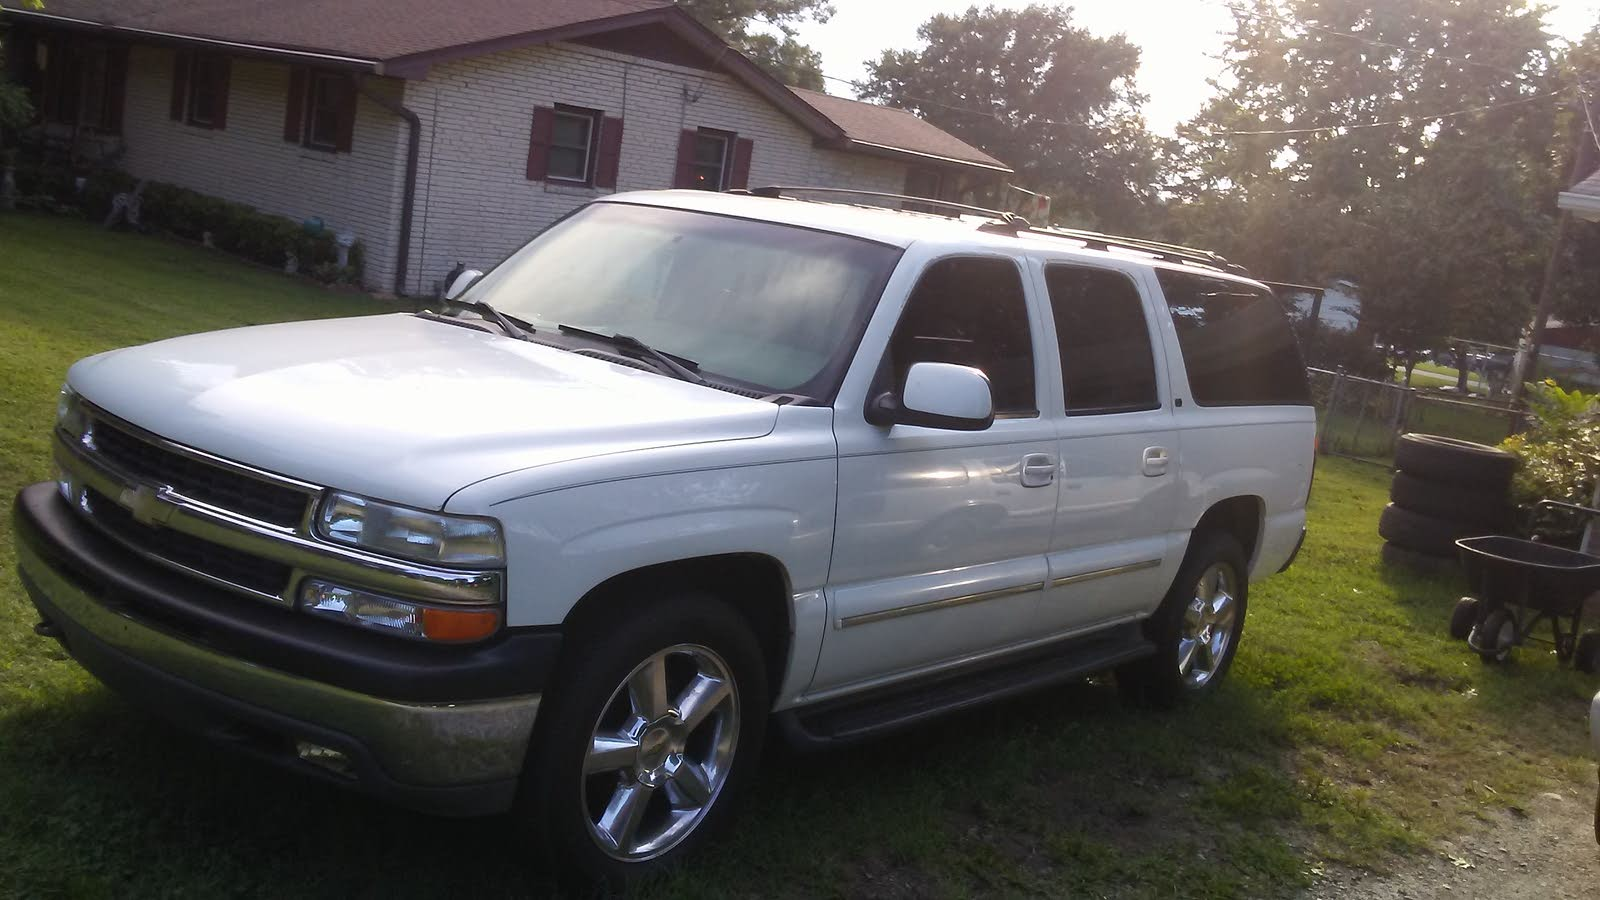 Chevrolet Suburban Questions I Have A 2004 Chevy Suburban And I